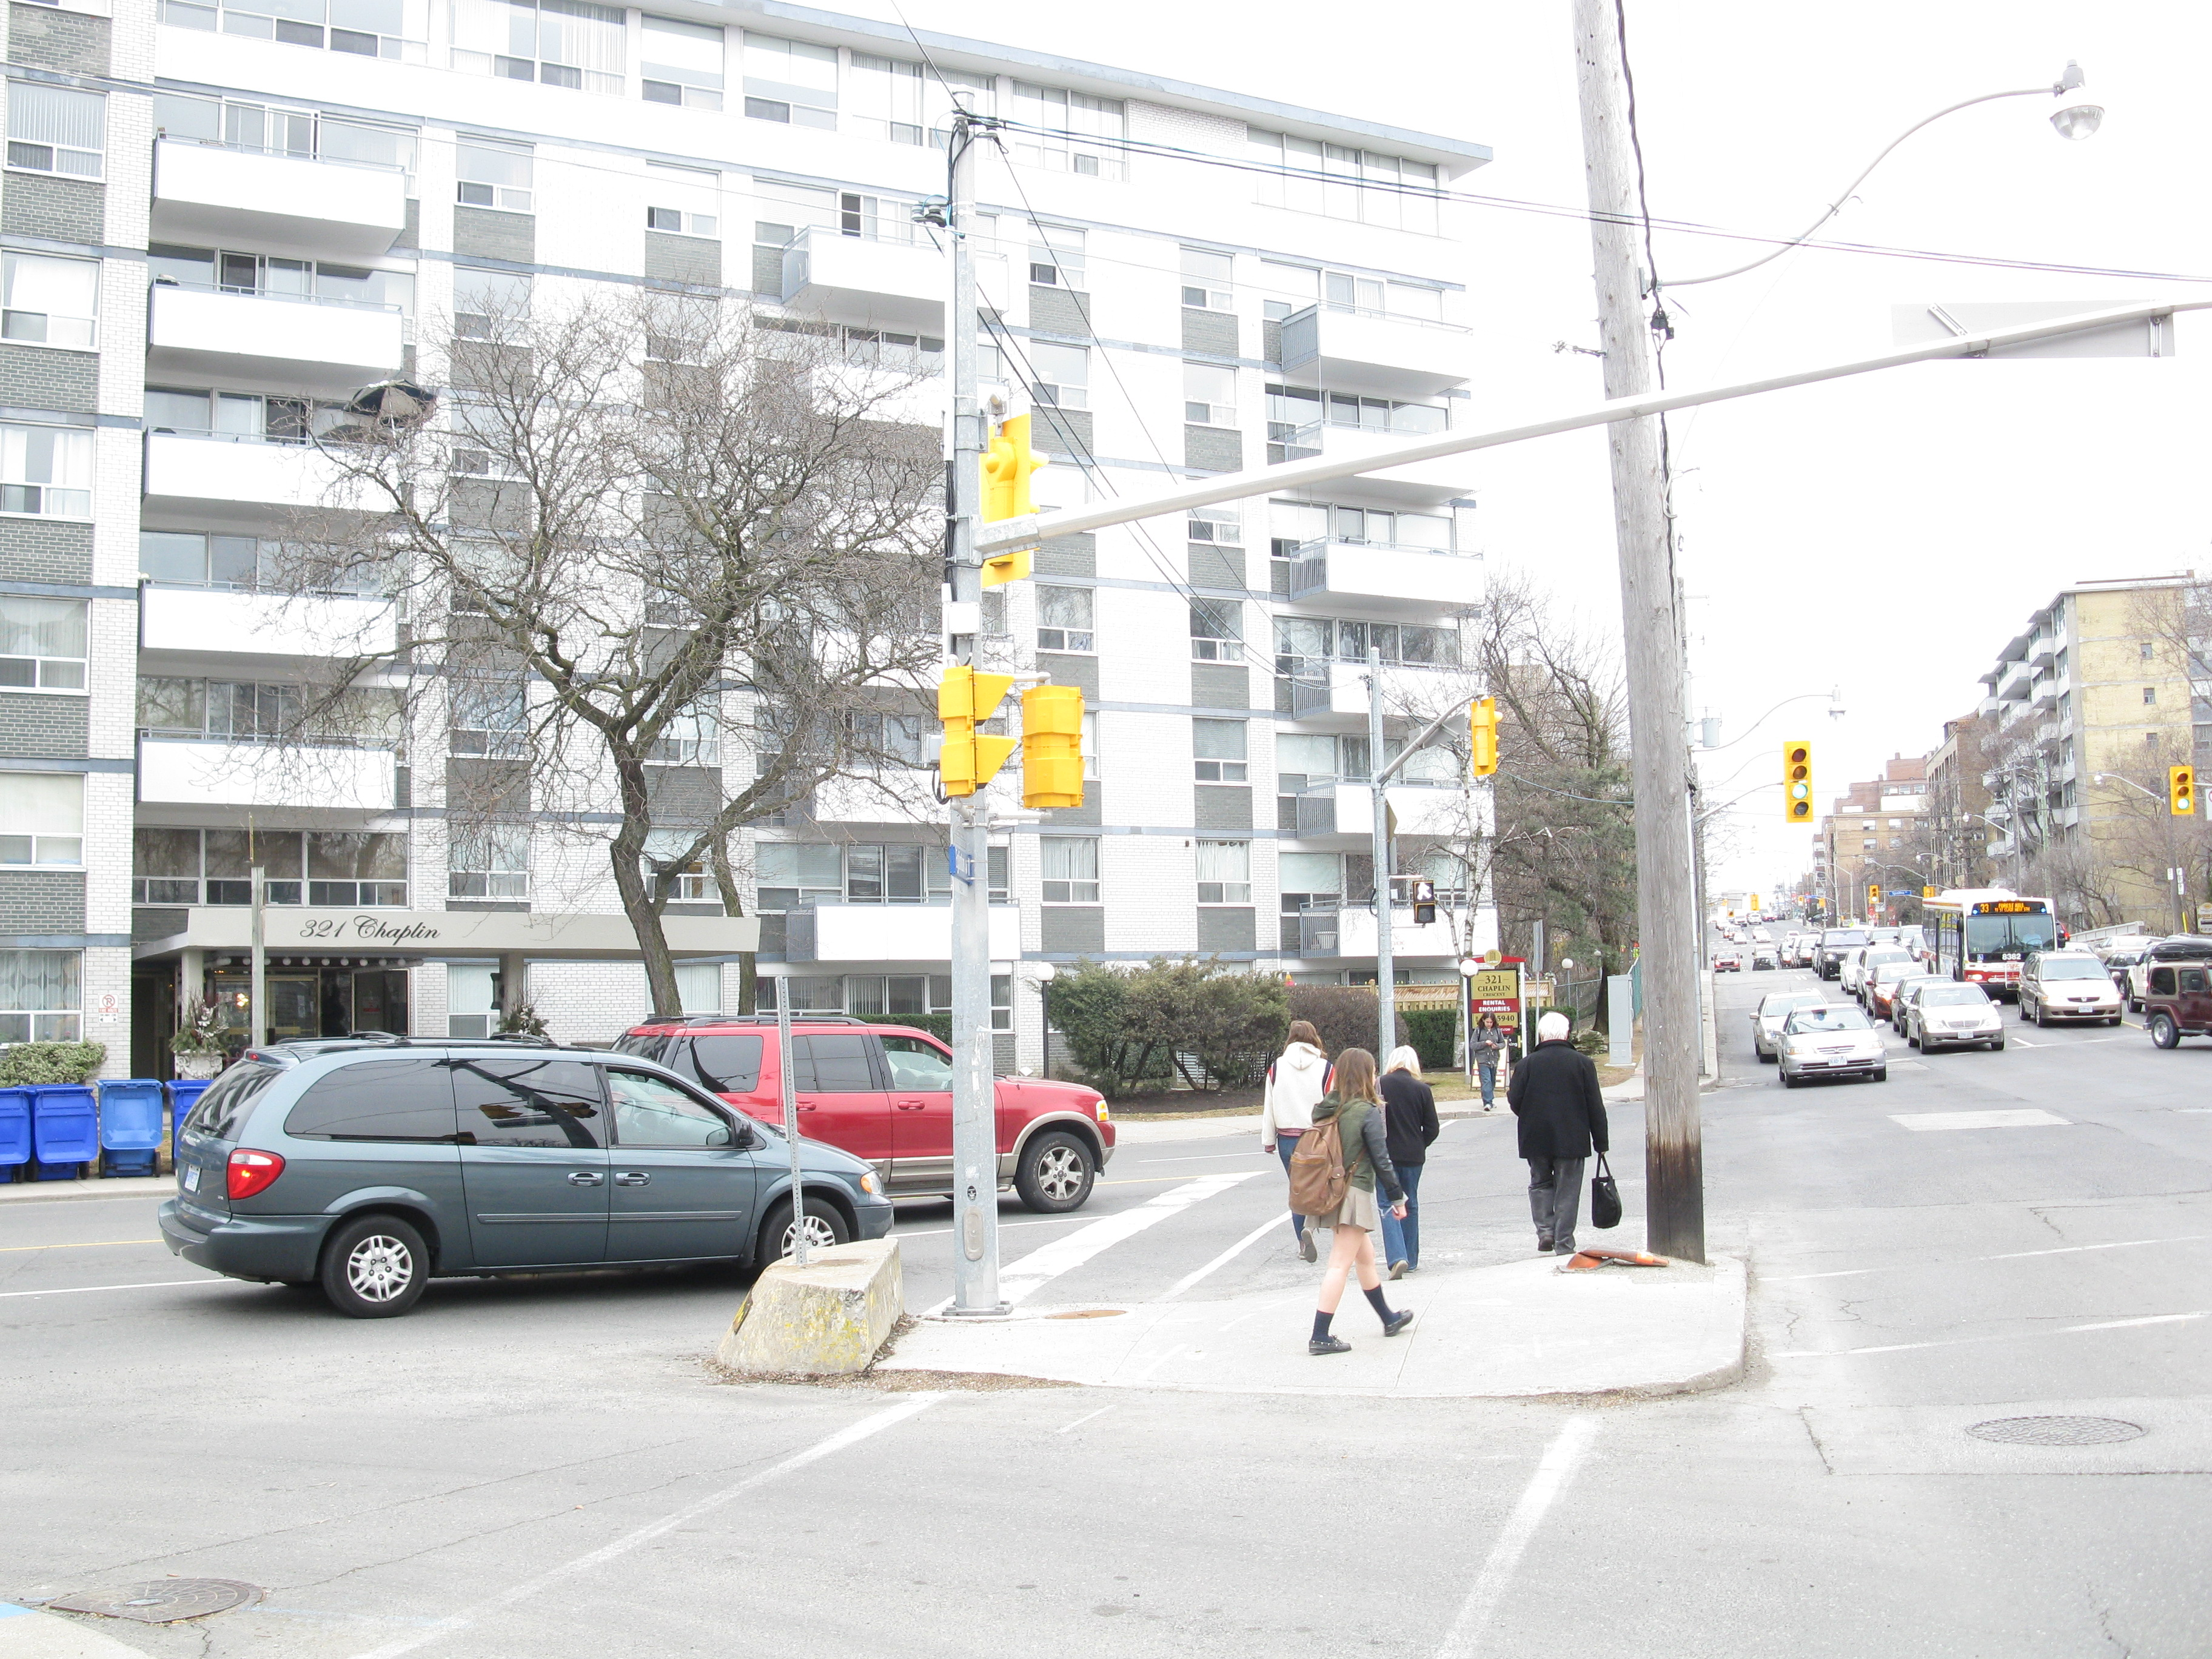 Intersection of Chaplin and Eglinton, 2013 04 09 -an, Architecture, Building, Car, Outdoor, HQ Photo